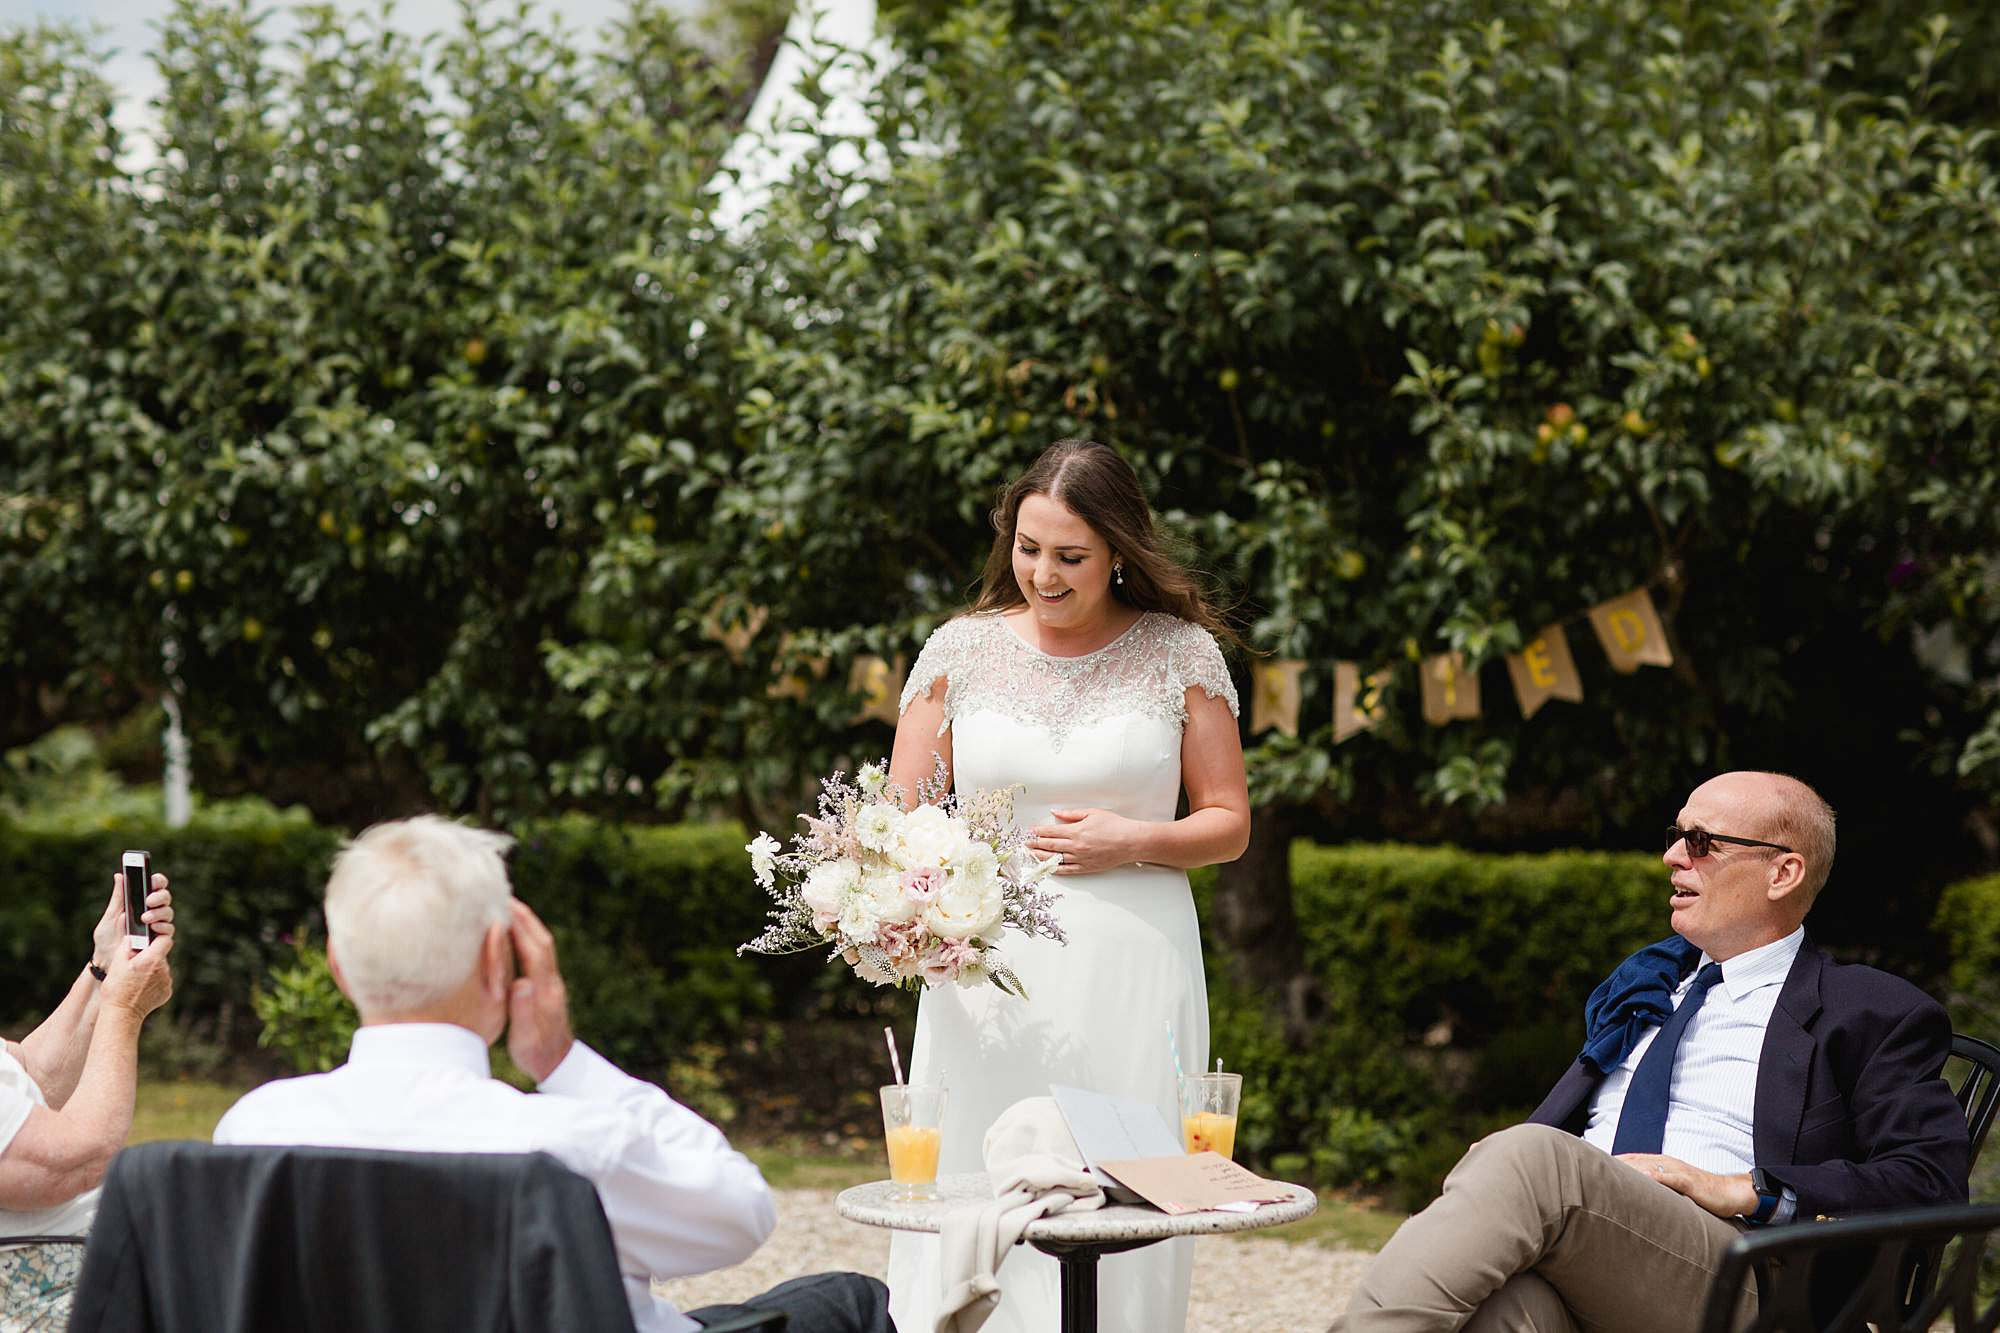 fun outdoor wedding bride shows off her bouquet to guests